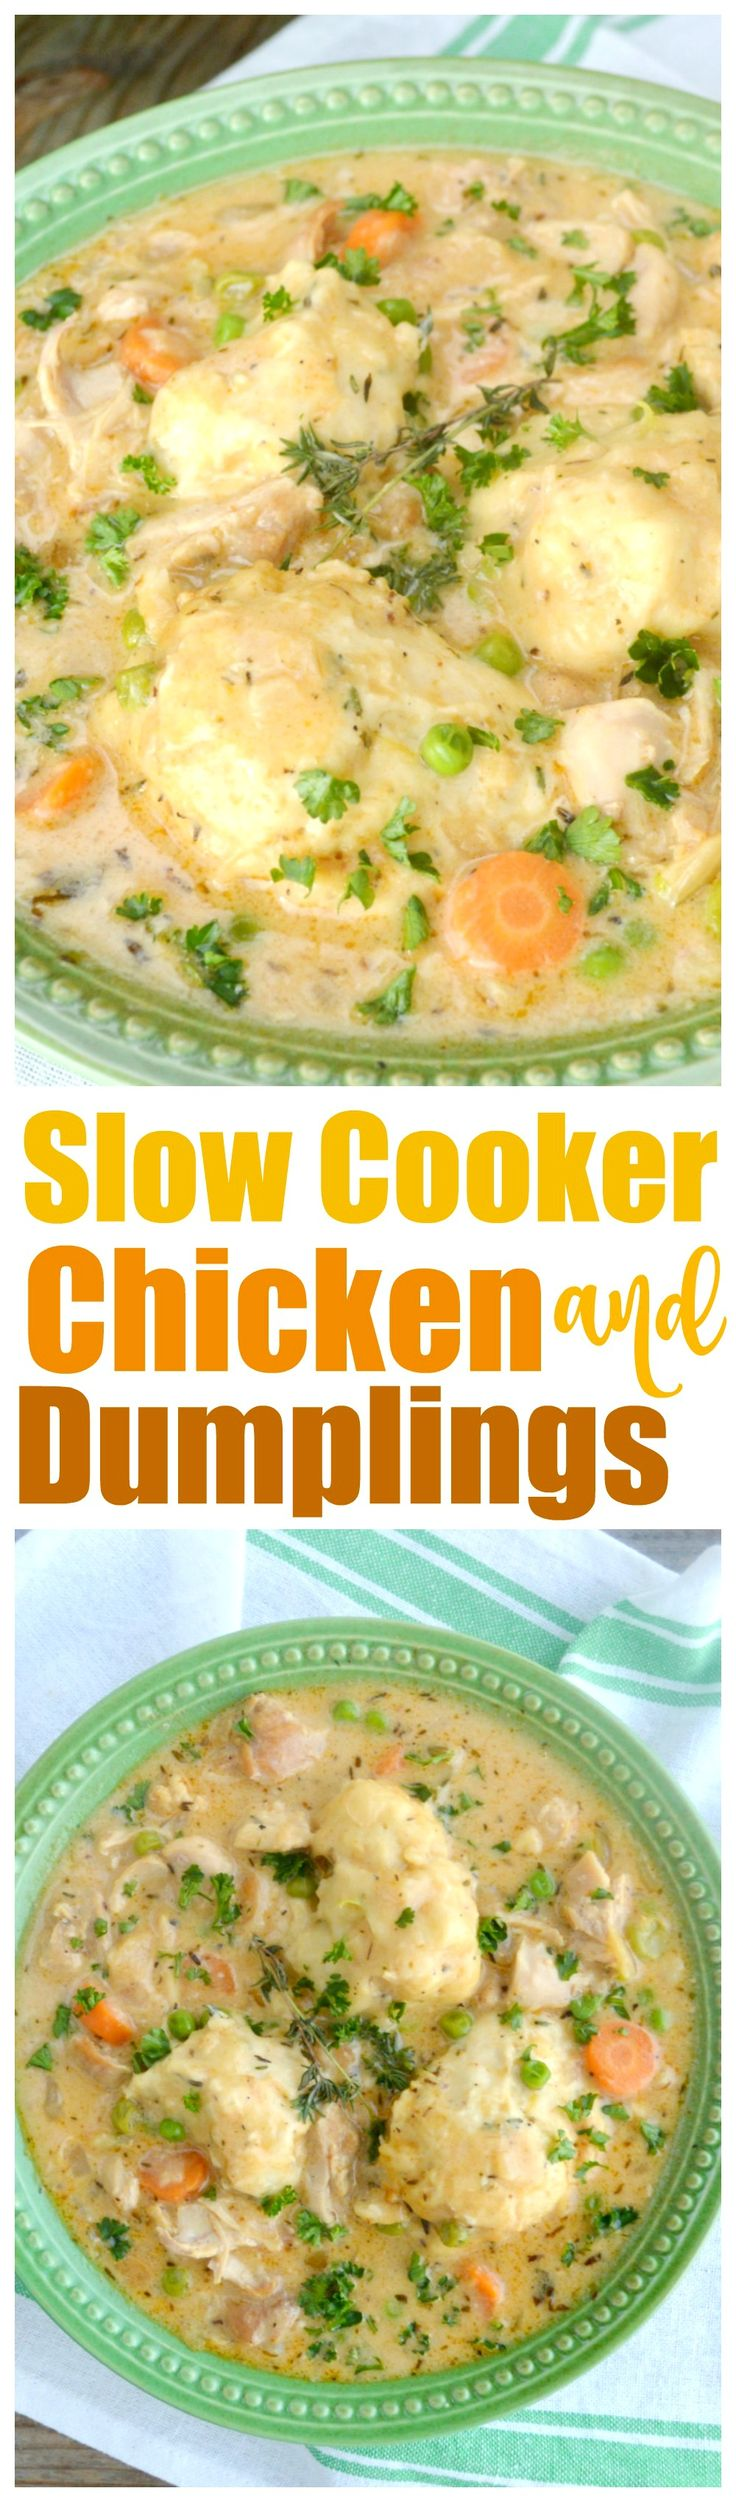 Slow Cooker Chicken and Dumplings~Thick, rich, velvety stew loaded with chicken and veggies all topped with yummy dumplings!  All made from scratch in your crock pot!